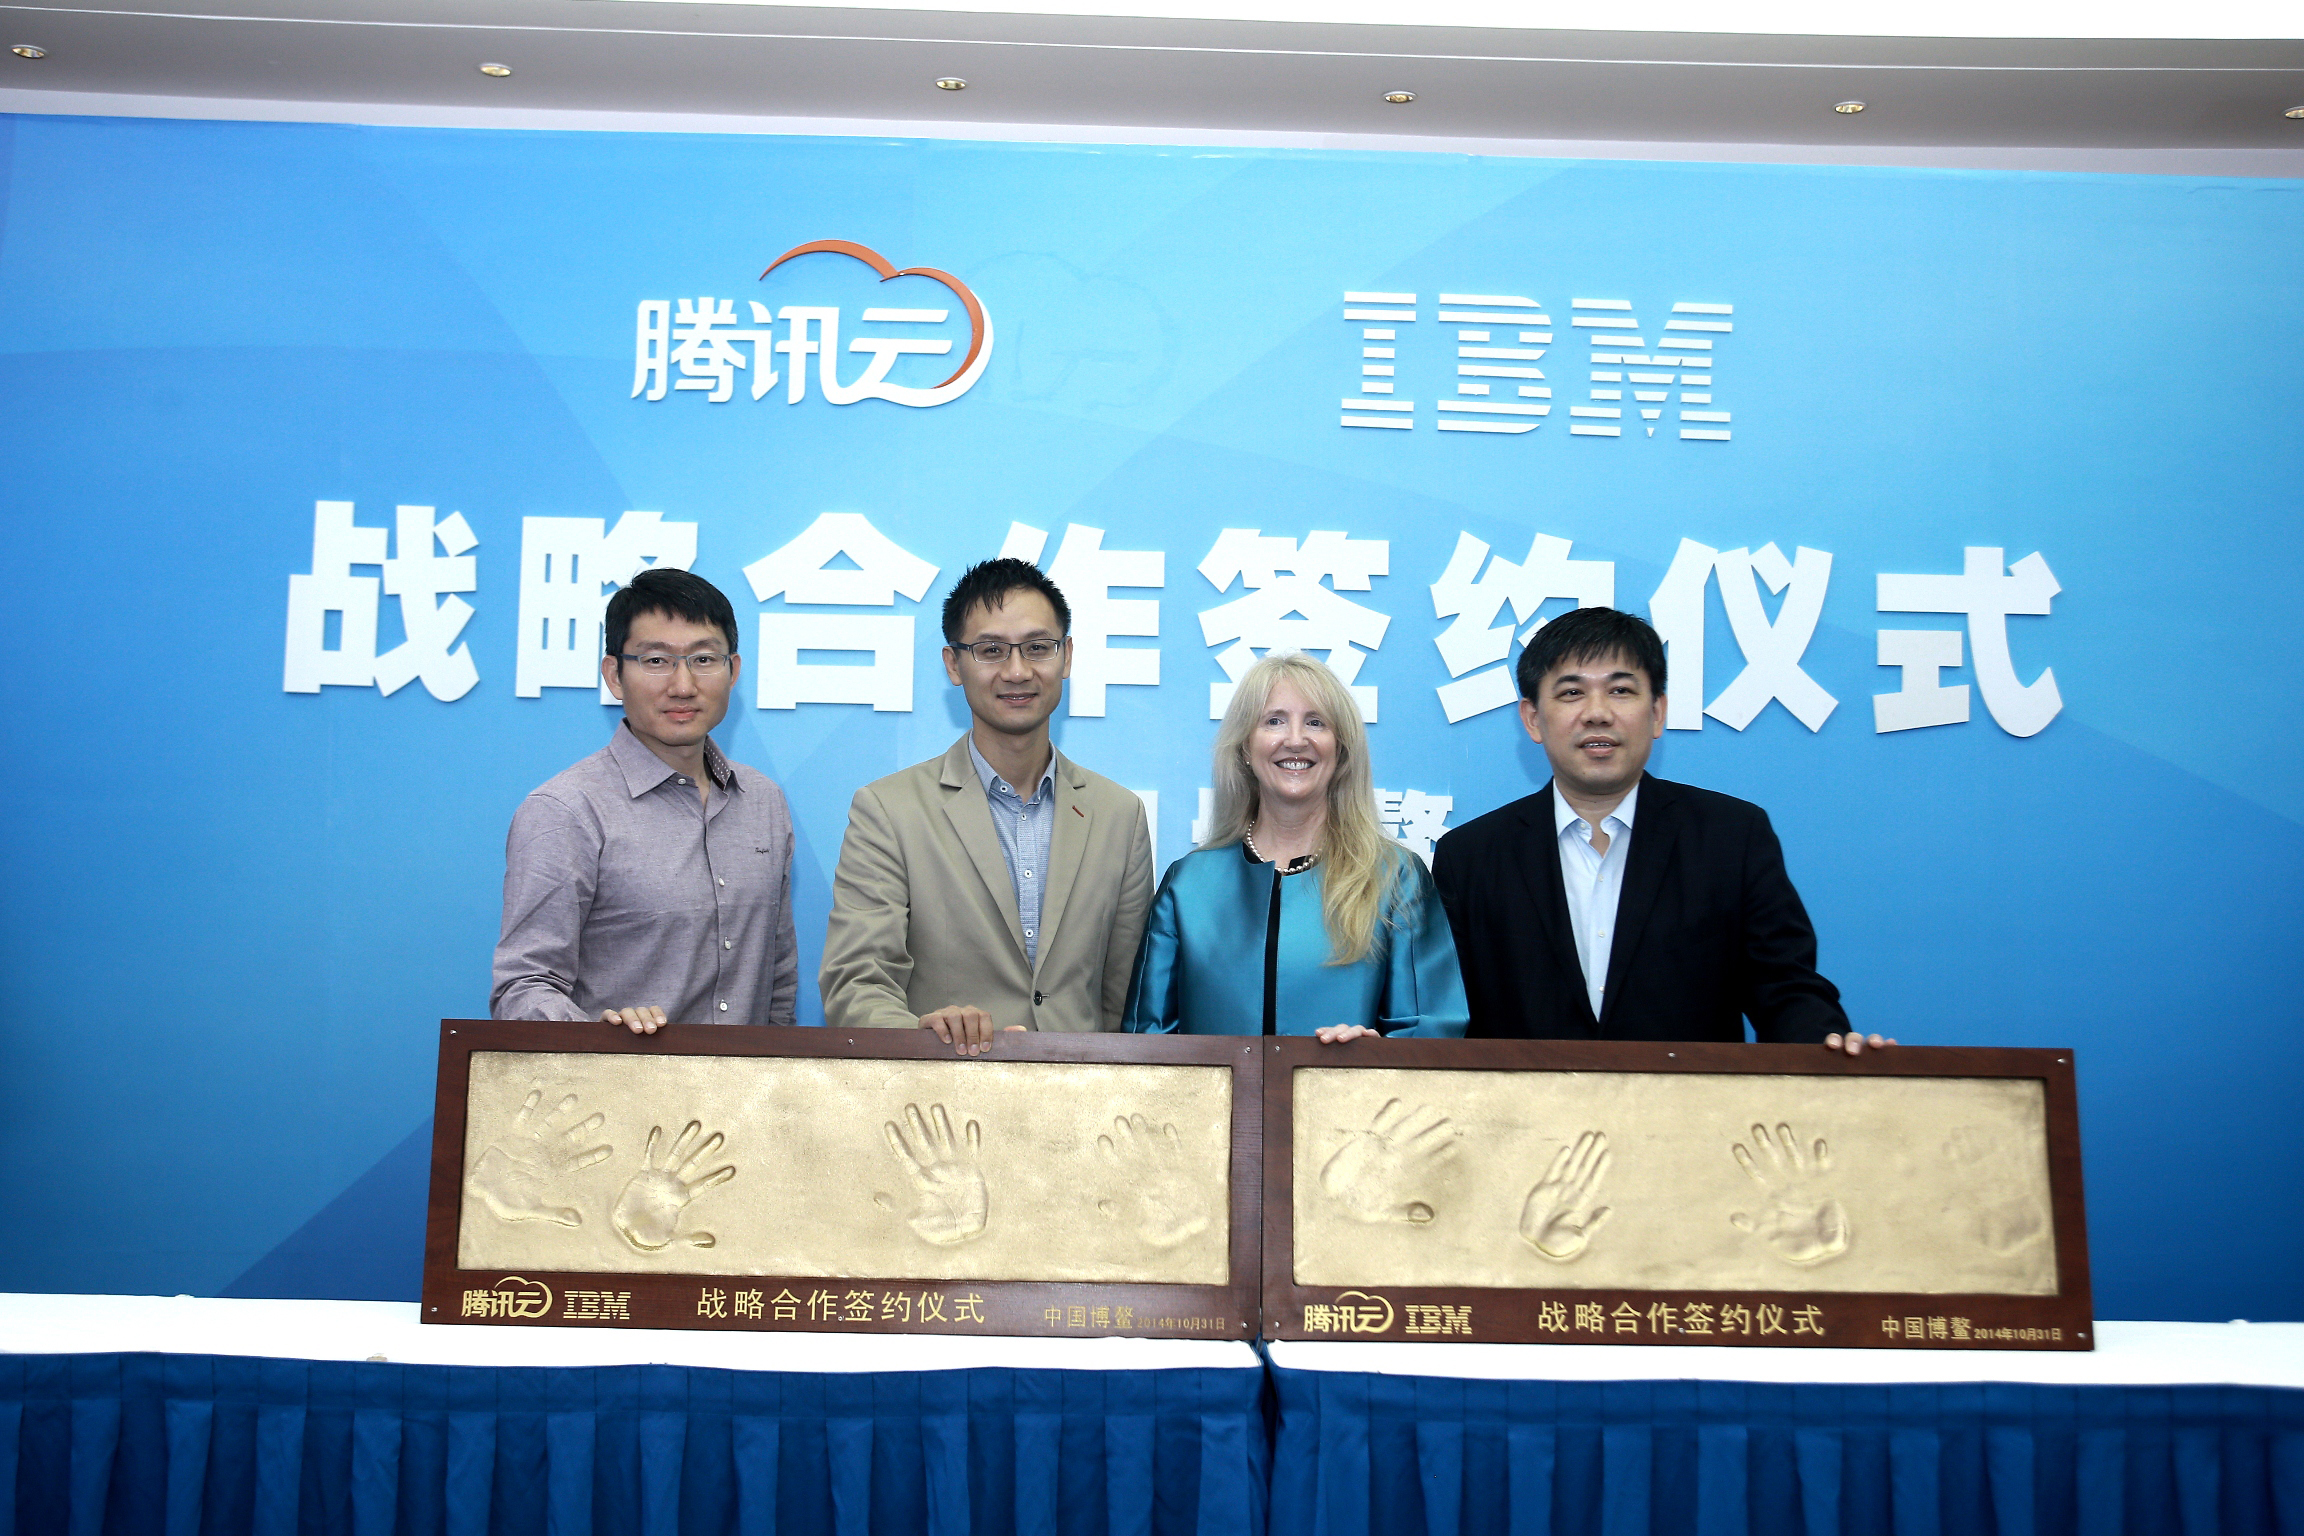 Tencent Cloud and IBM signed a memorandum of understanding to collaborate on cloud deployments in China.